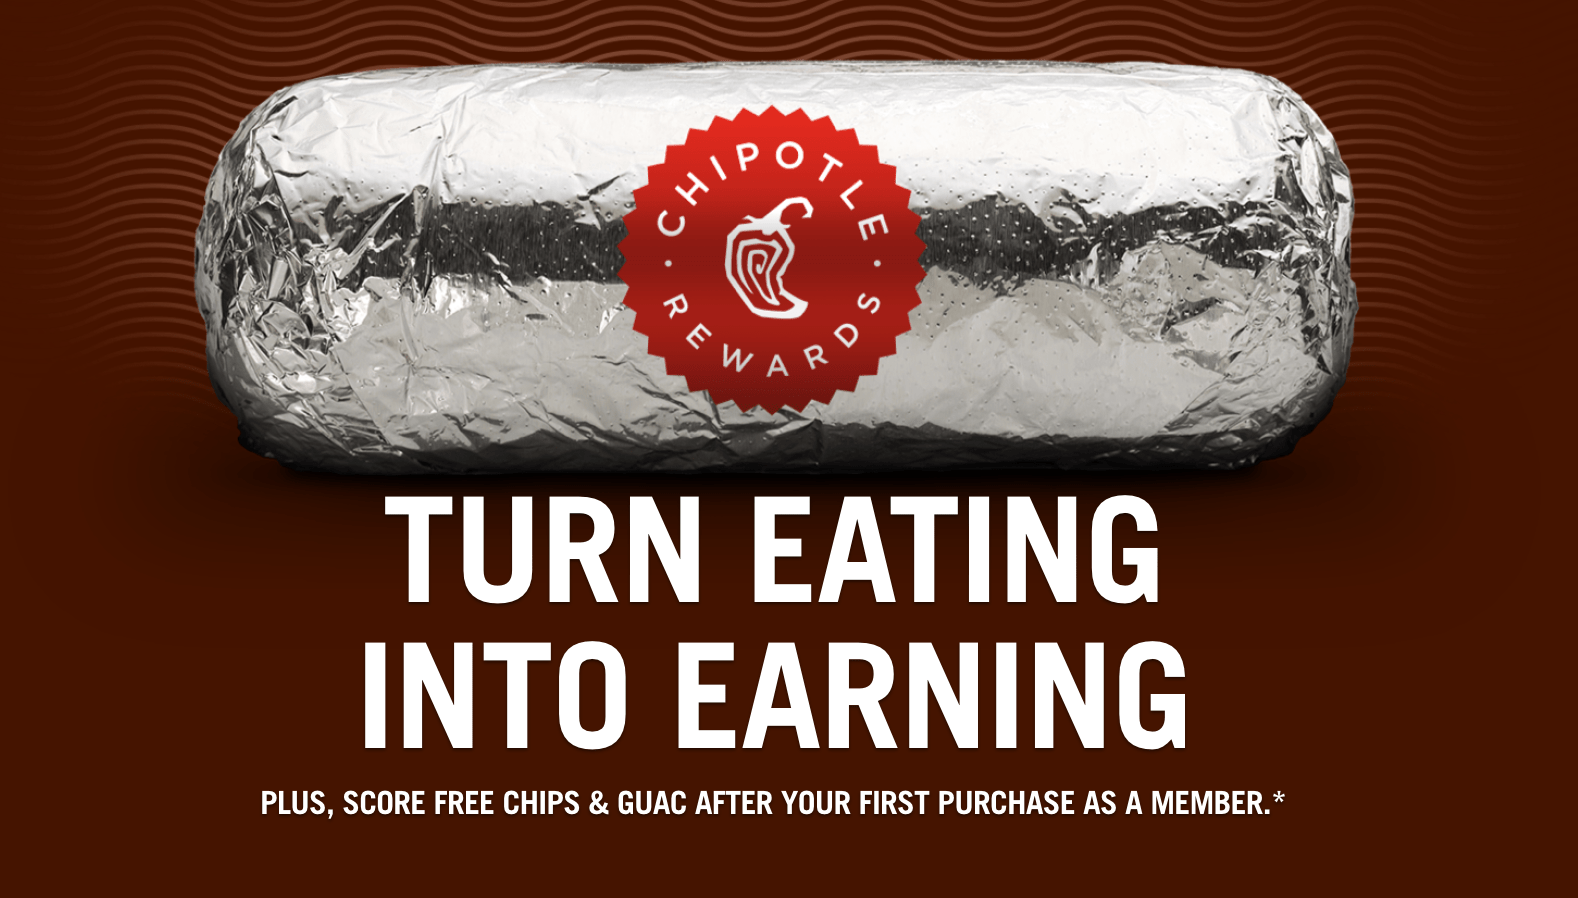 Chipotle Rewards